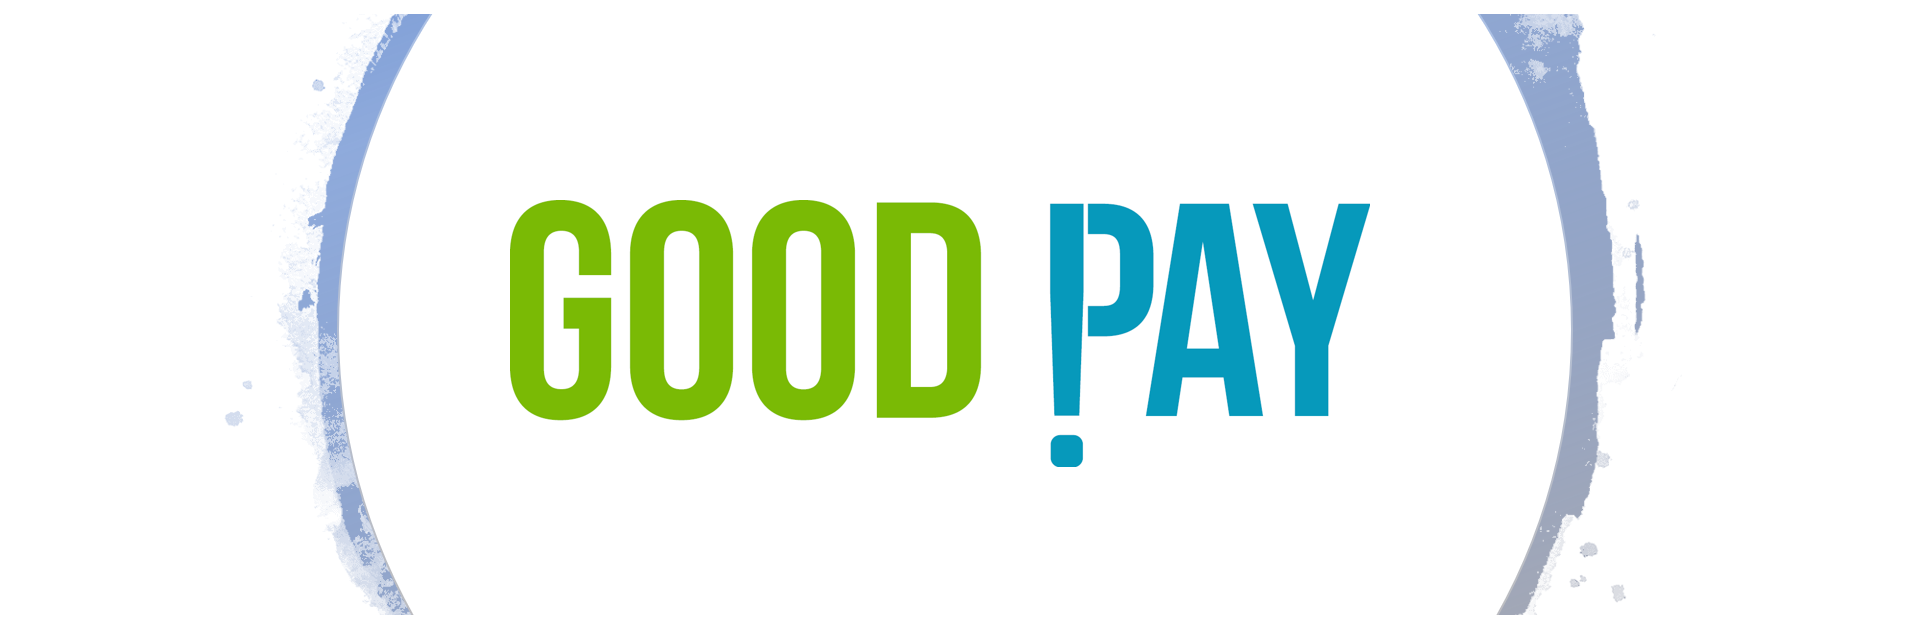 image that represent Goodbye GoodPay